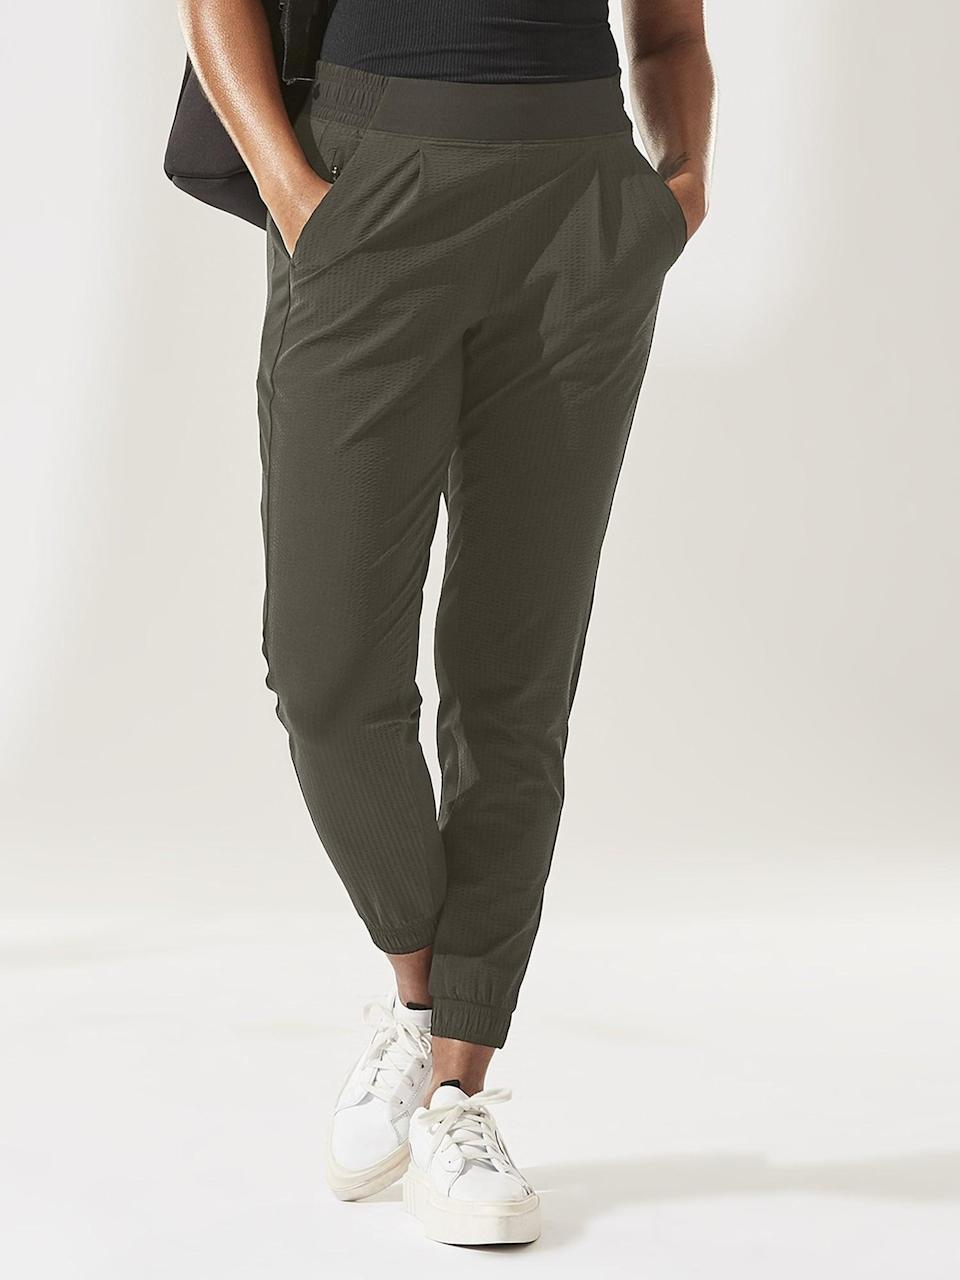 <p>The <span>Athleta Textured Brooklyn Jogger</span> ($40-$45, originally $98) is a solid choice for dog walks around the neighborhood or runs to the store (even when no <em>actual</em> running is involved). </p>